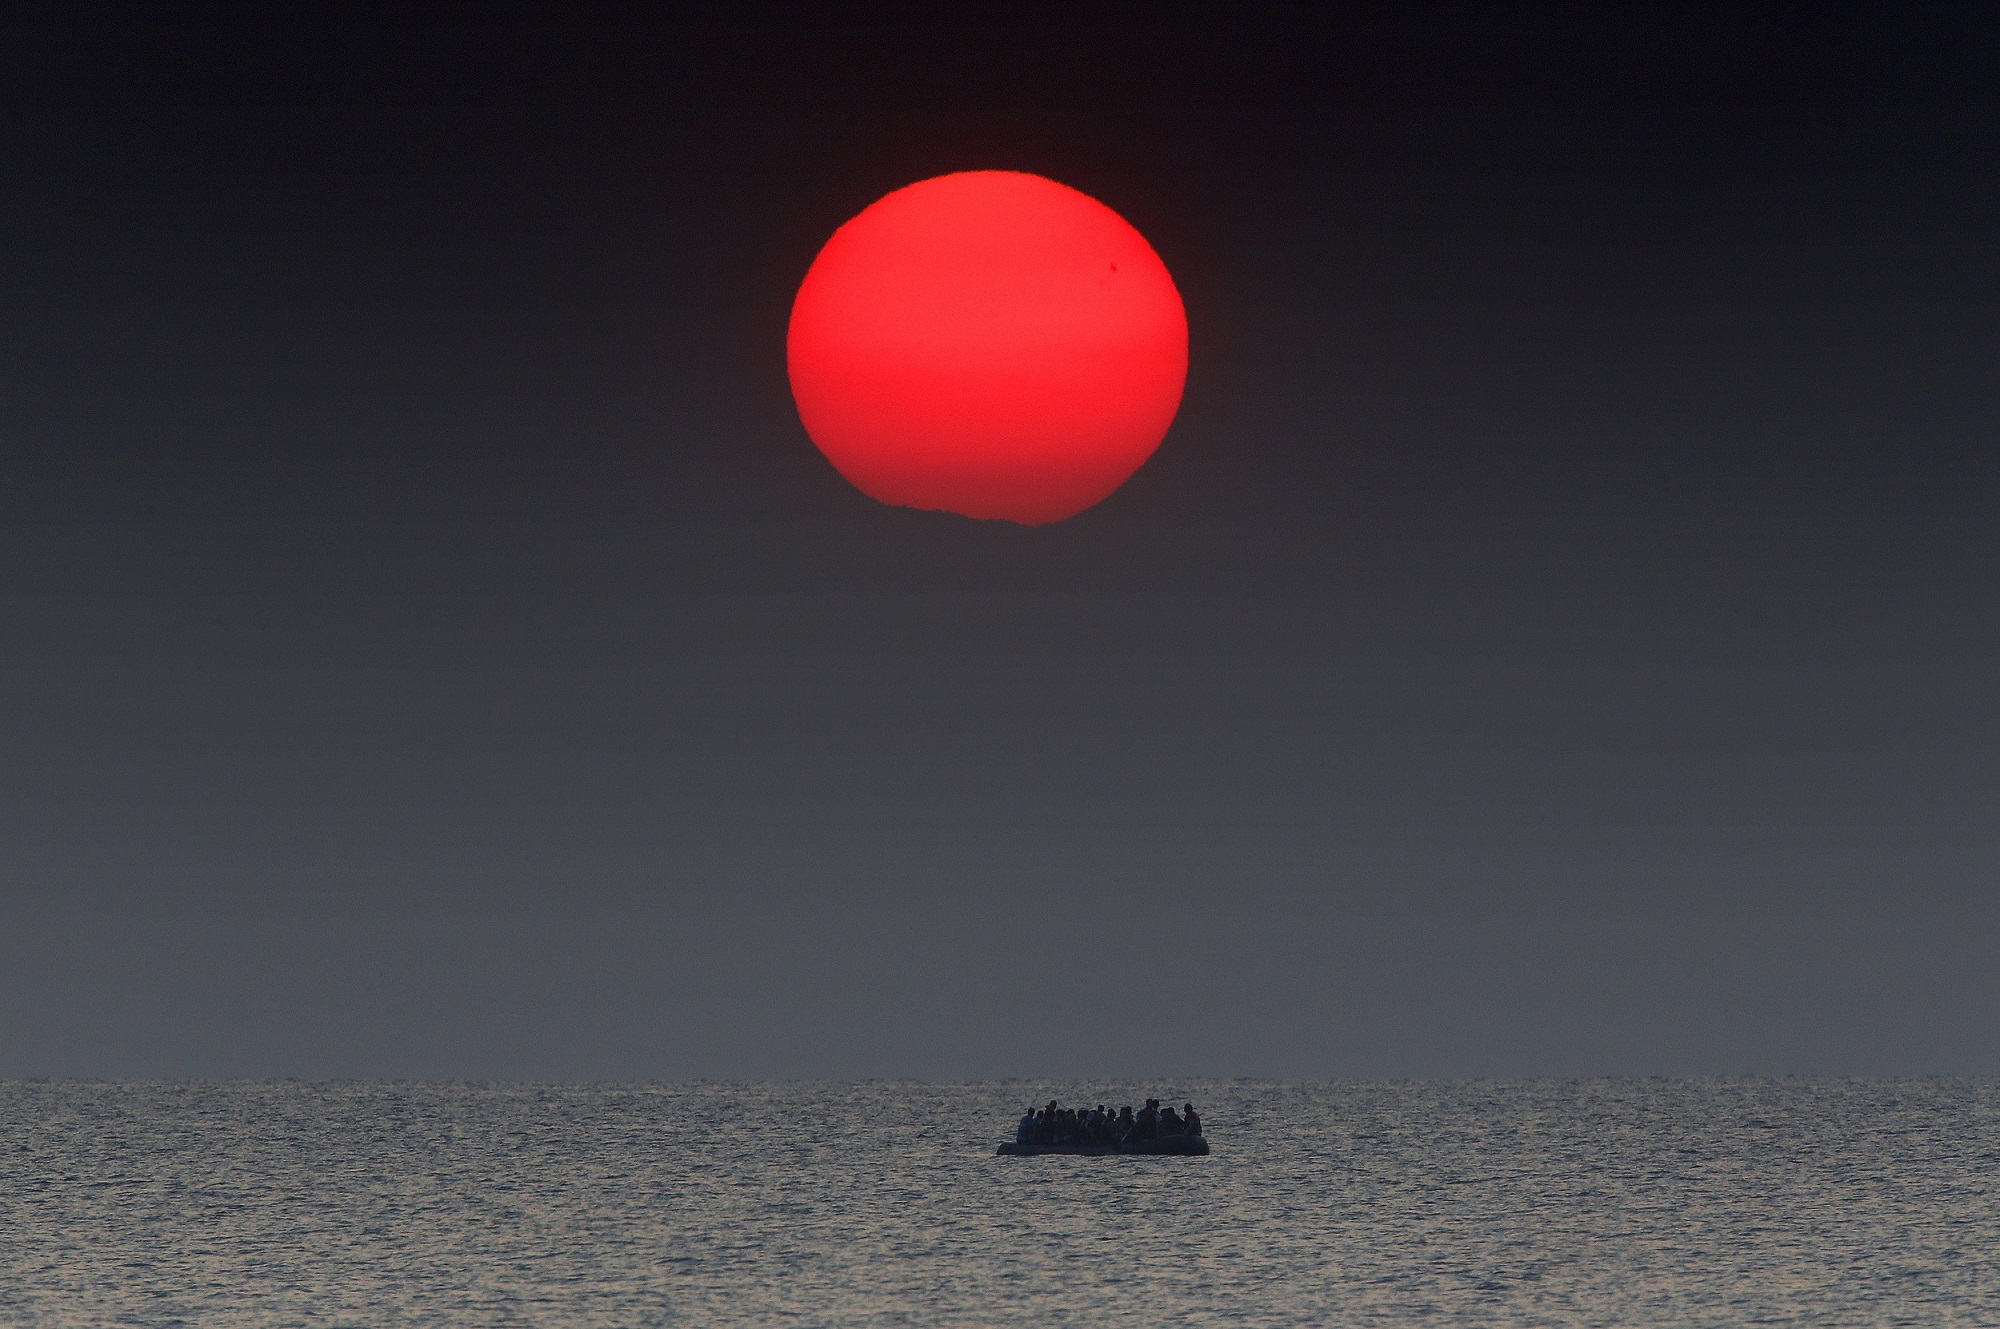 As the sun rises a dinghy overcrowded with Syrian refugees drifts in the Aegean sea between Turkey and Greece after its motor broke down while traveling from the Turkish coast to the Greek island of Kos, August 11, 2015. A Greek coast guard responded to distress signals and arrived at the scene to help. REUTERS/Yannis Behrakis